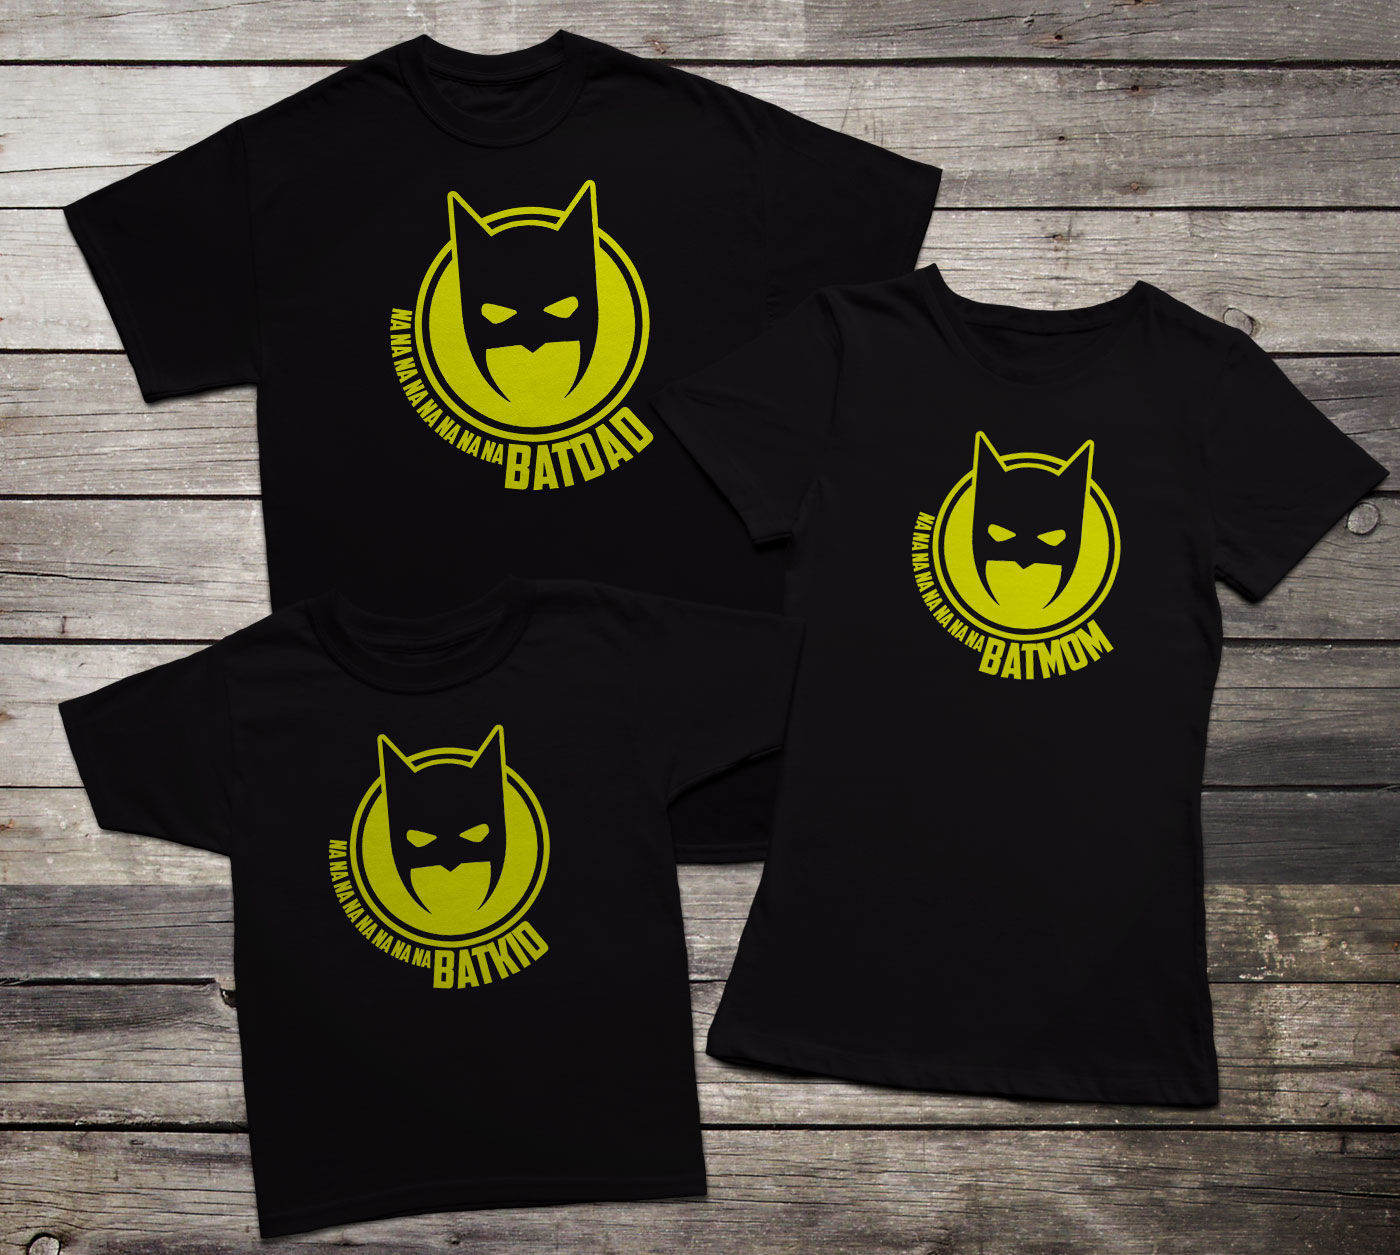 Batfamily family t shirt set inspired by batman for Riddler t shirt with bats